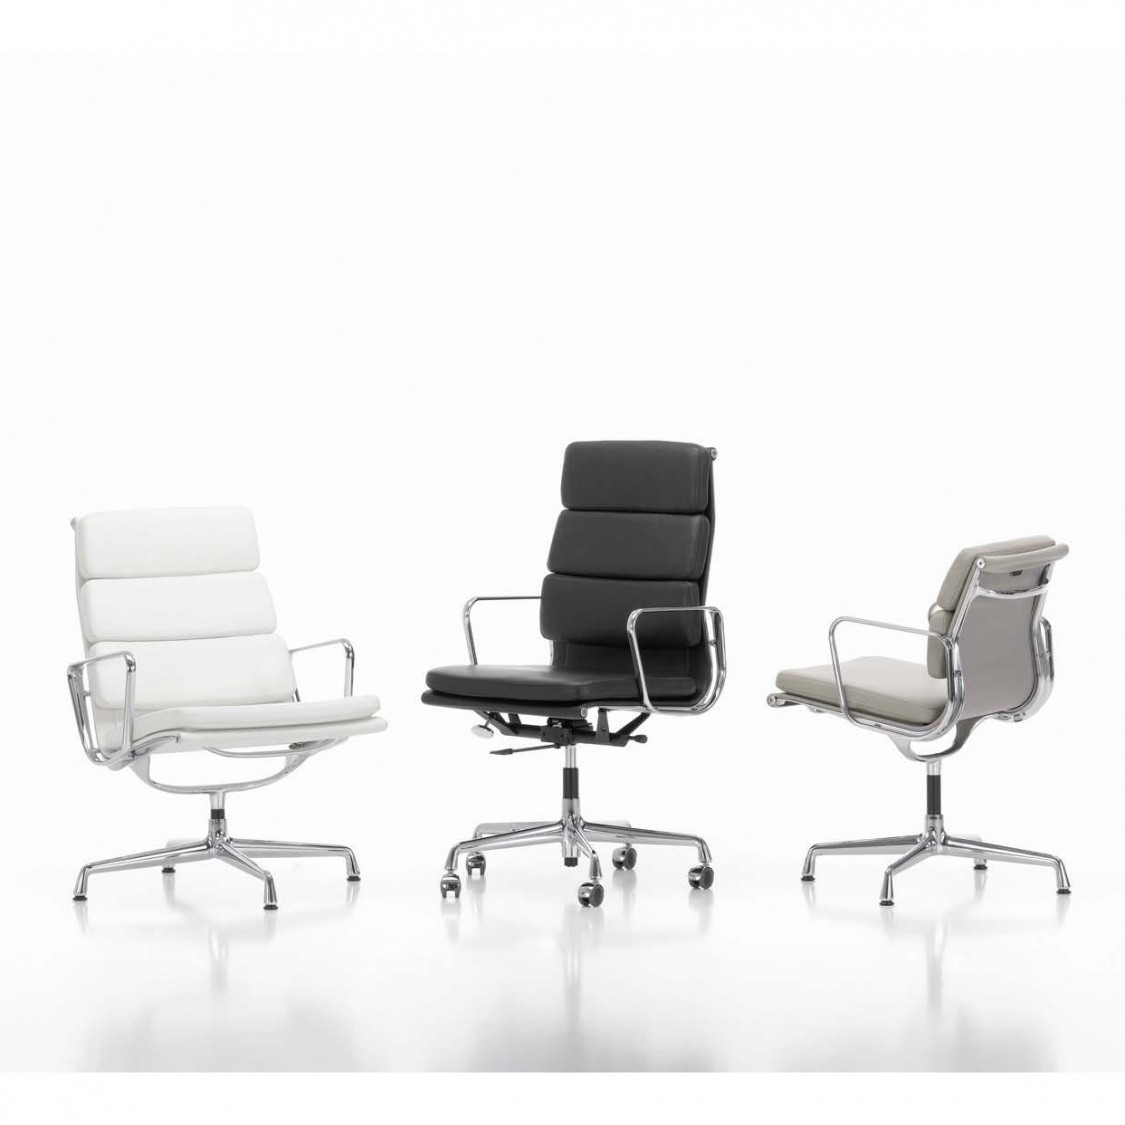 vitra ea 208 soft pad eames alu chair office chair ambientedirect. Black Bedroom Furniture Sets. Home Design Ideas